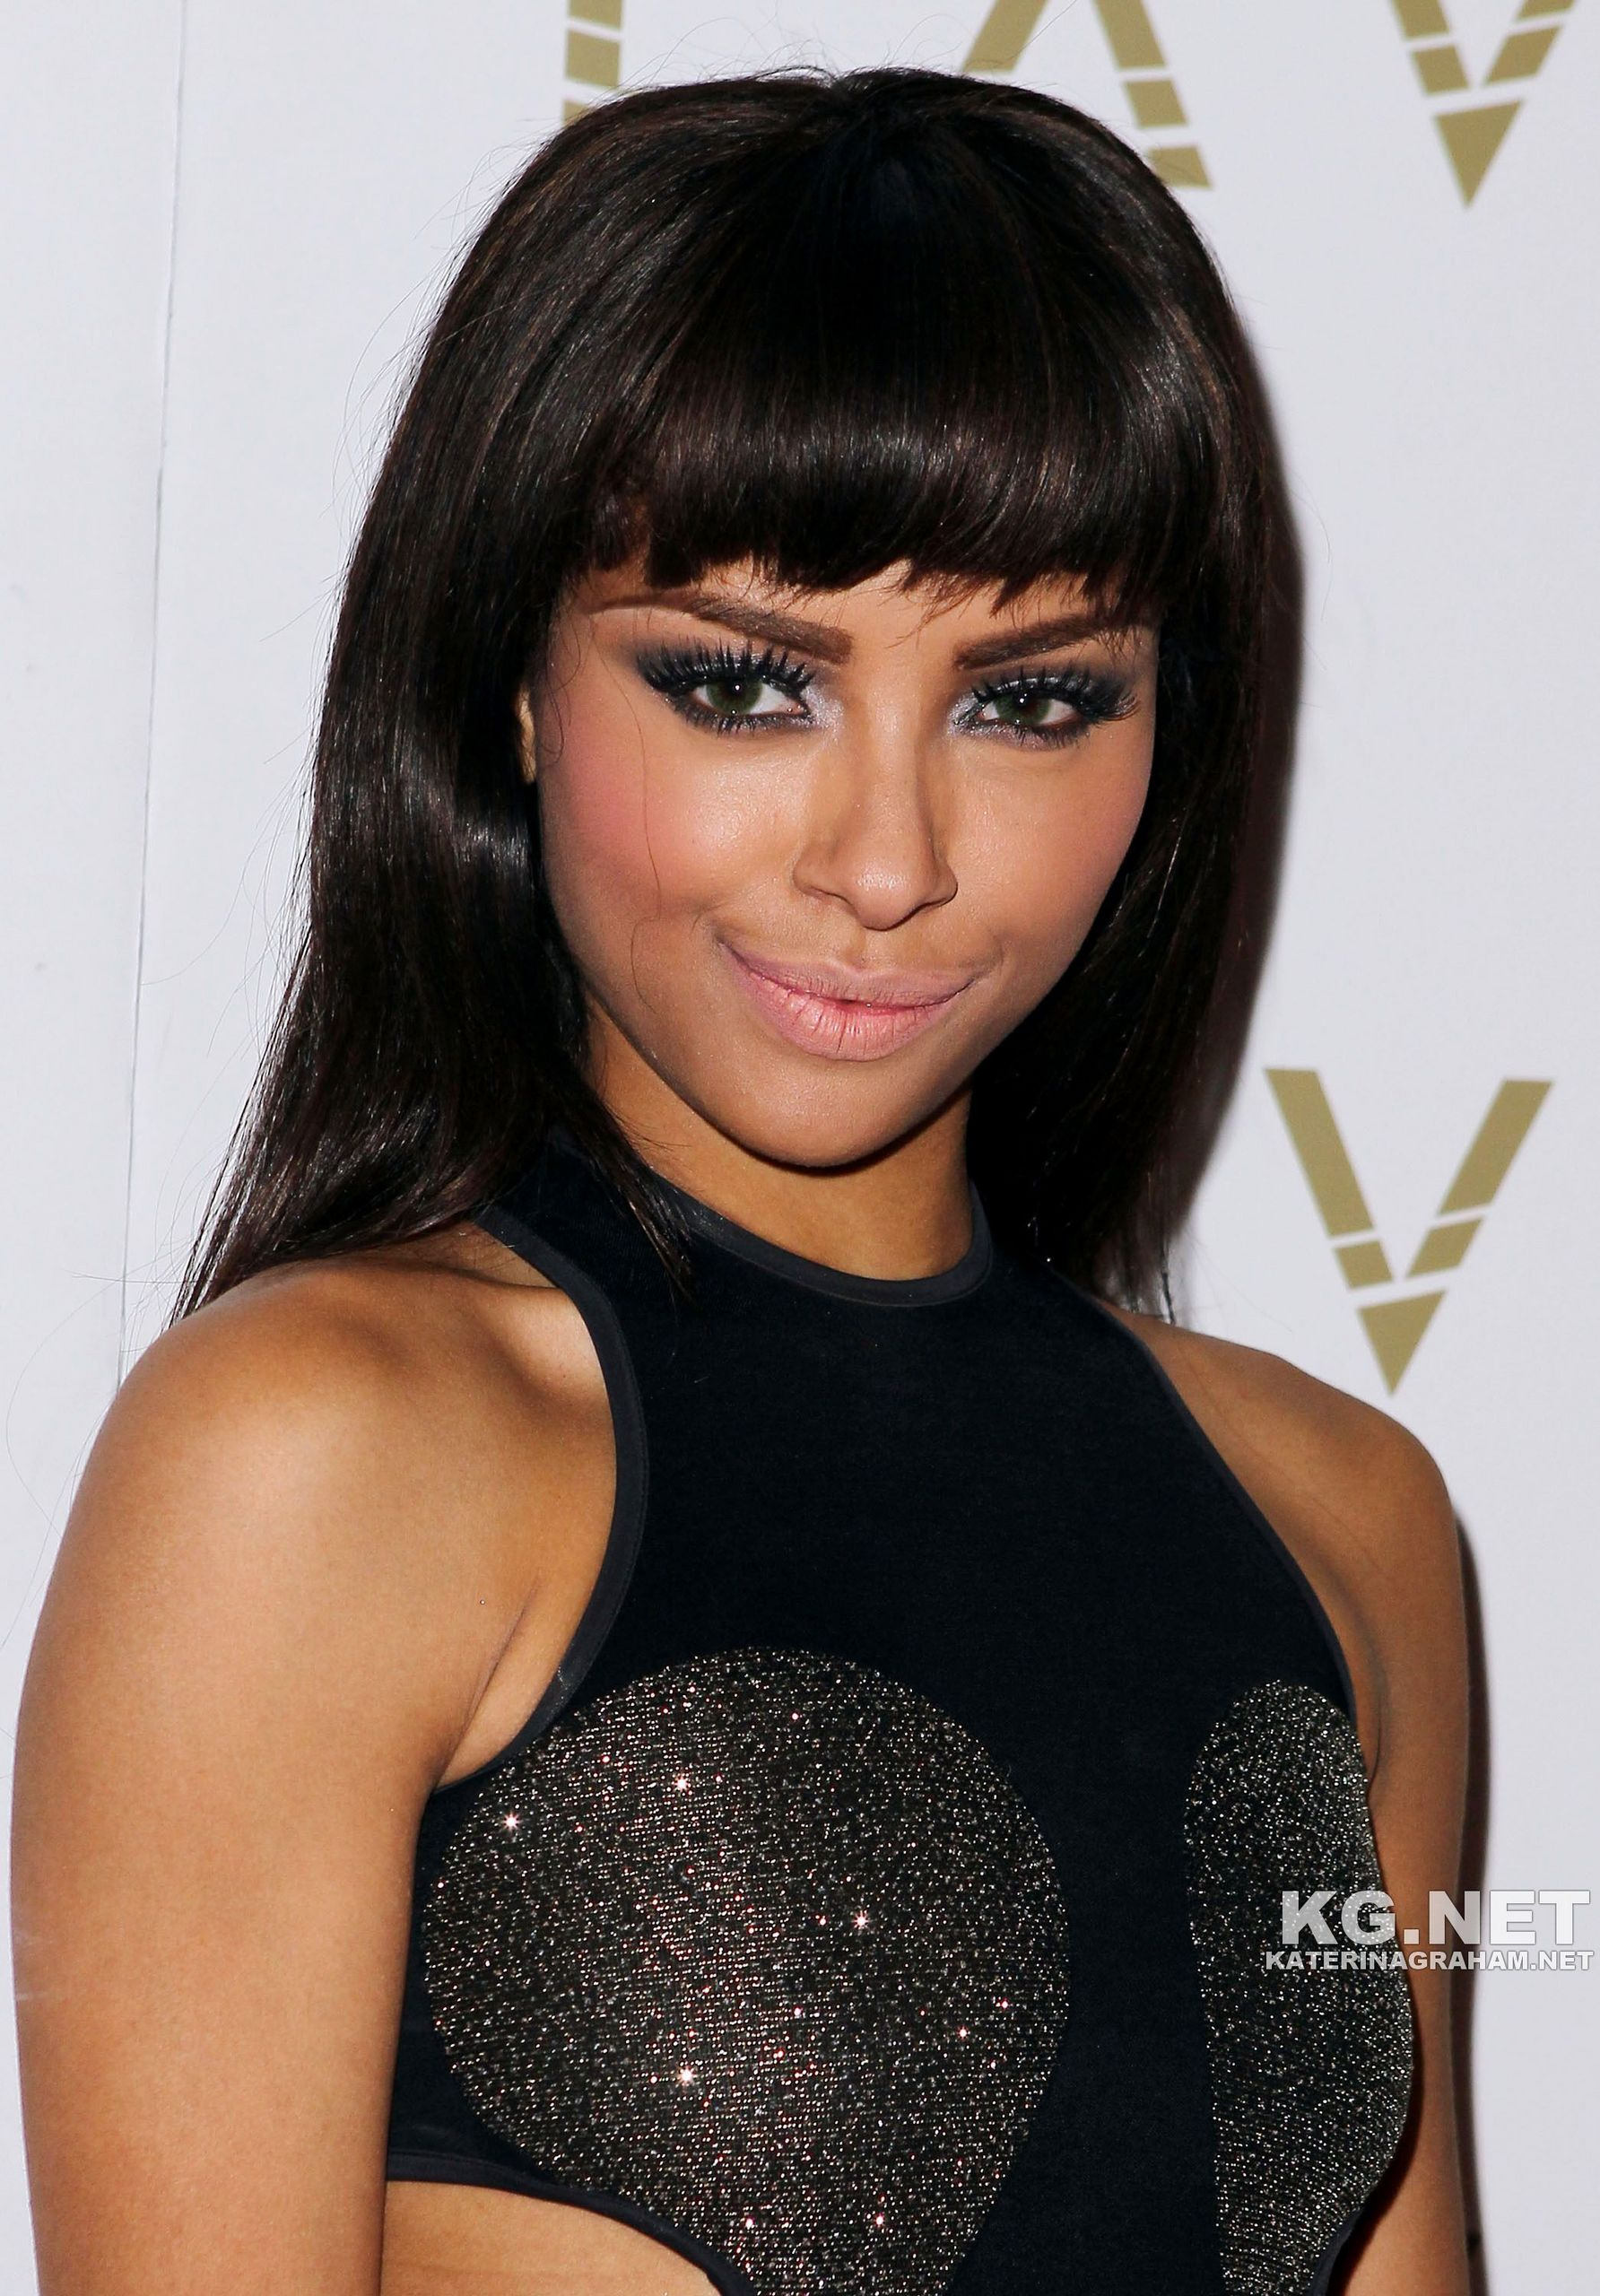 Kat Graham - Wallpaper Gallery